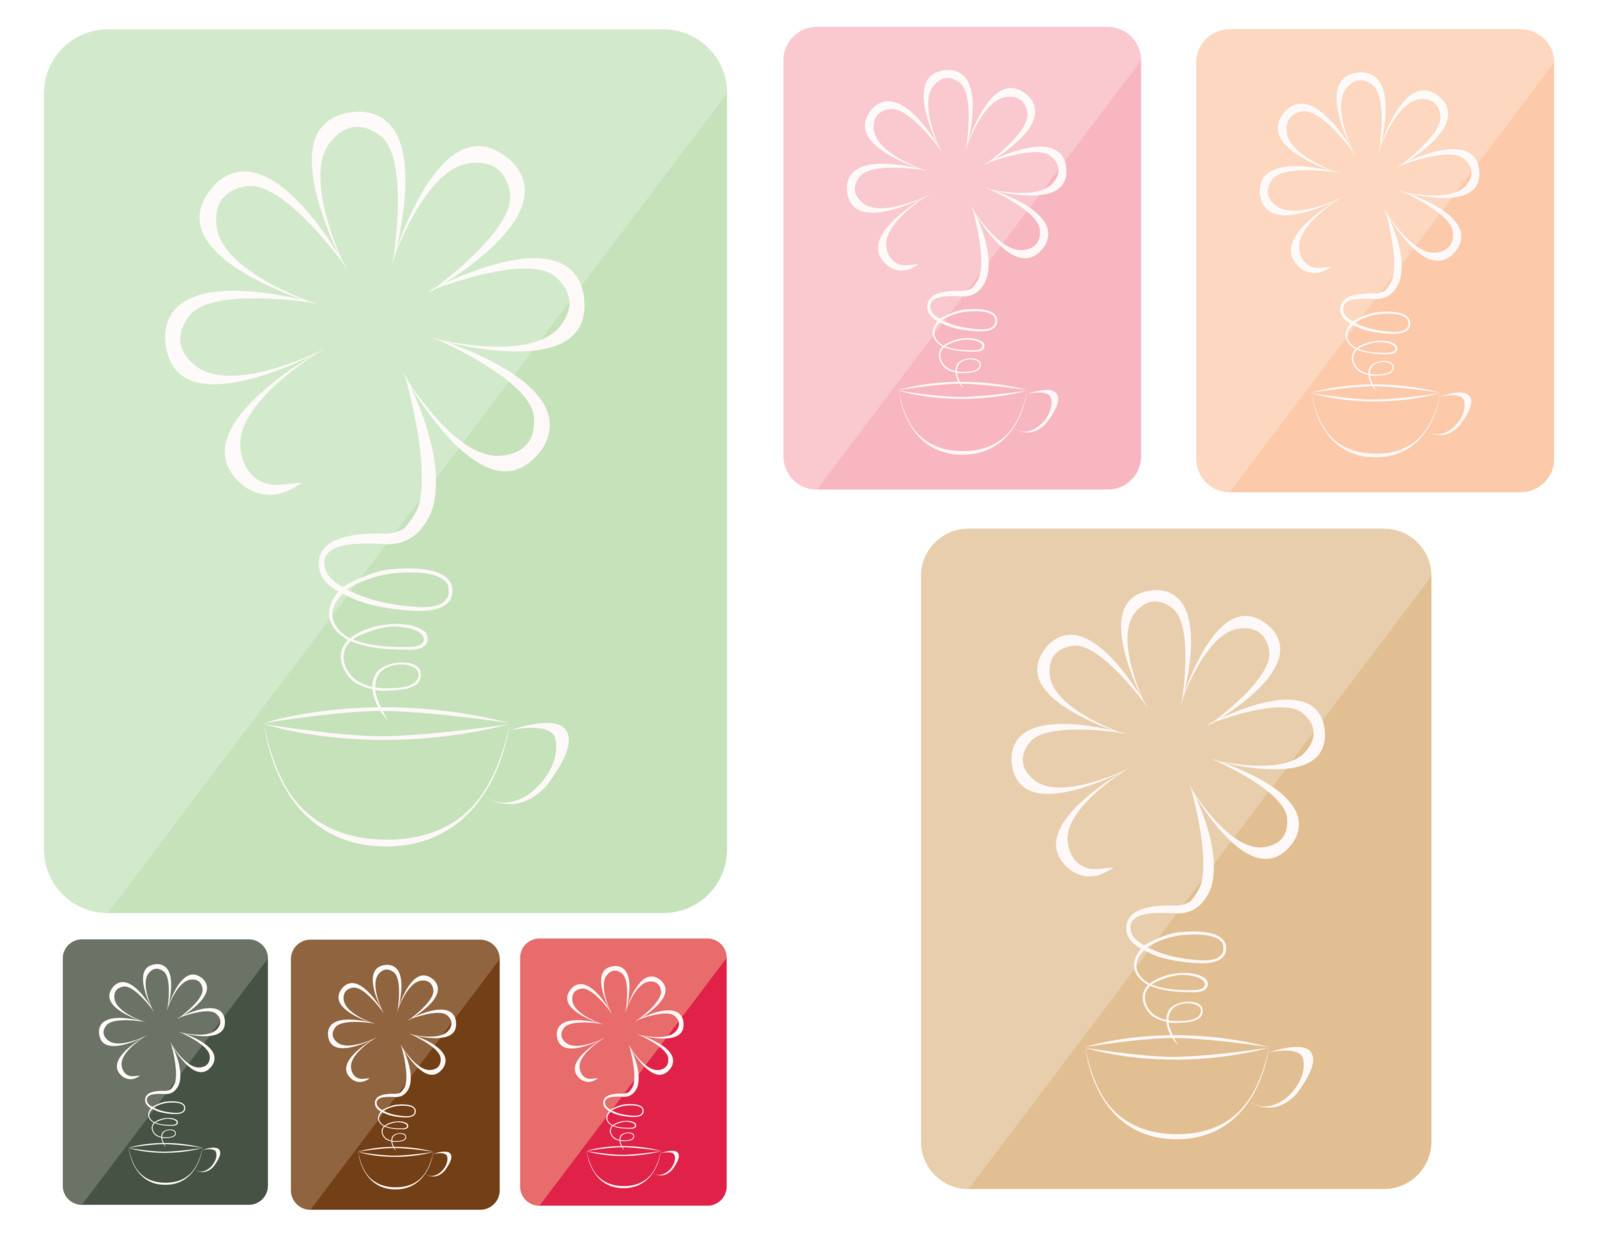 with a cup expecting the set of icons an aroma as a flower